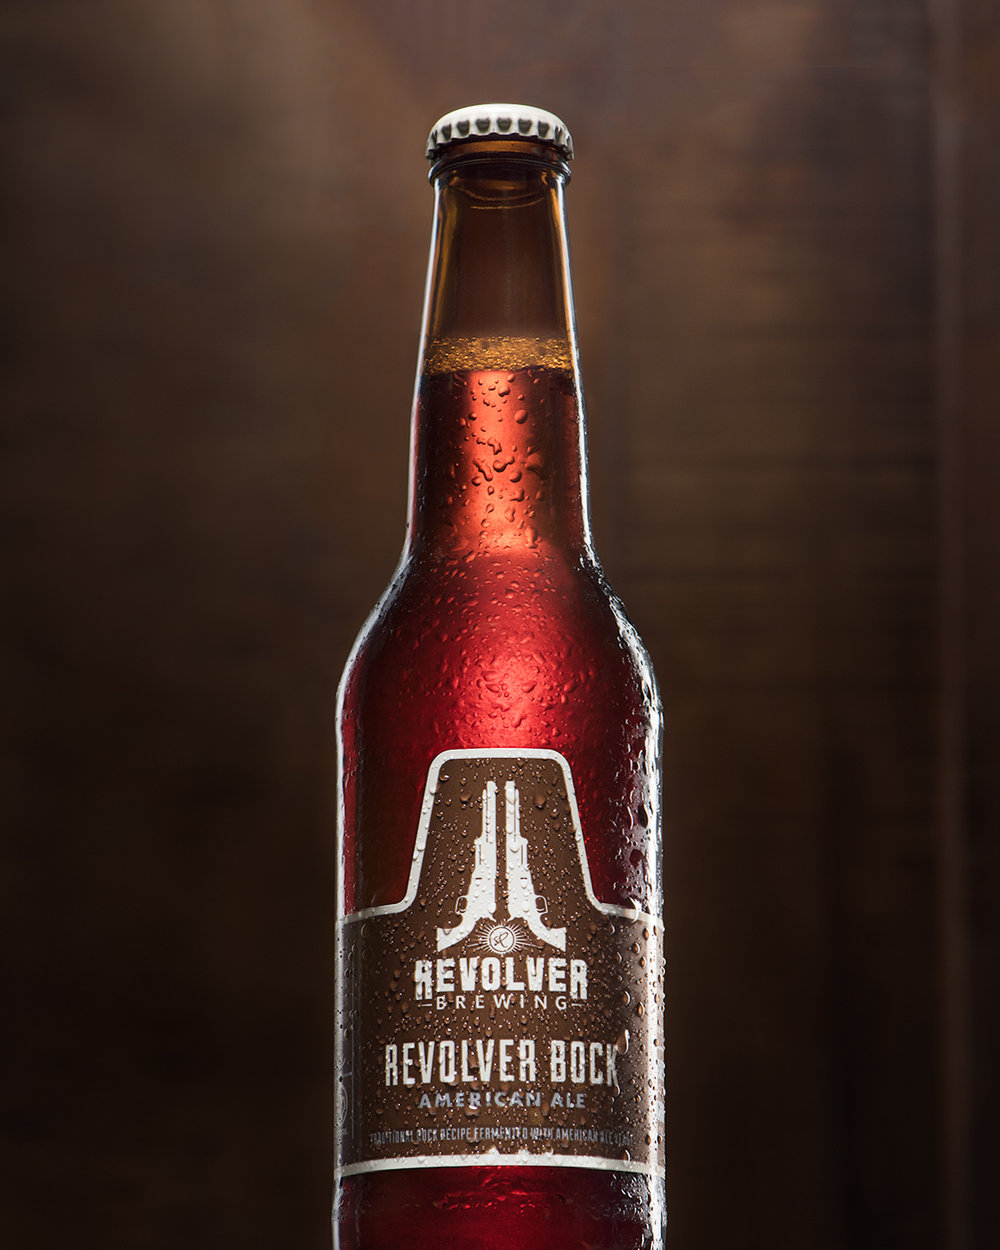 Commercial Beer and Beverage Photography